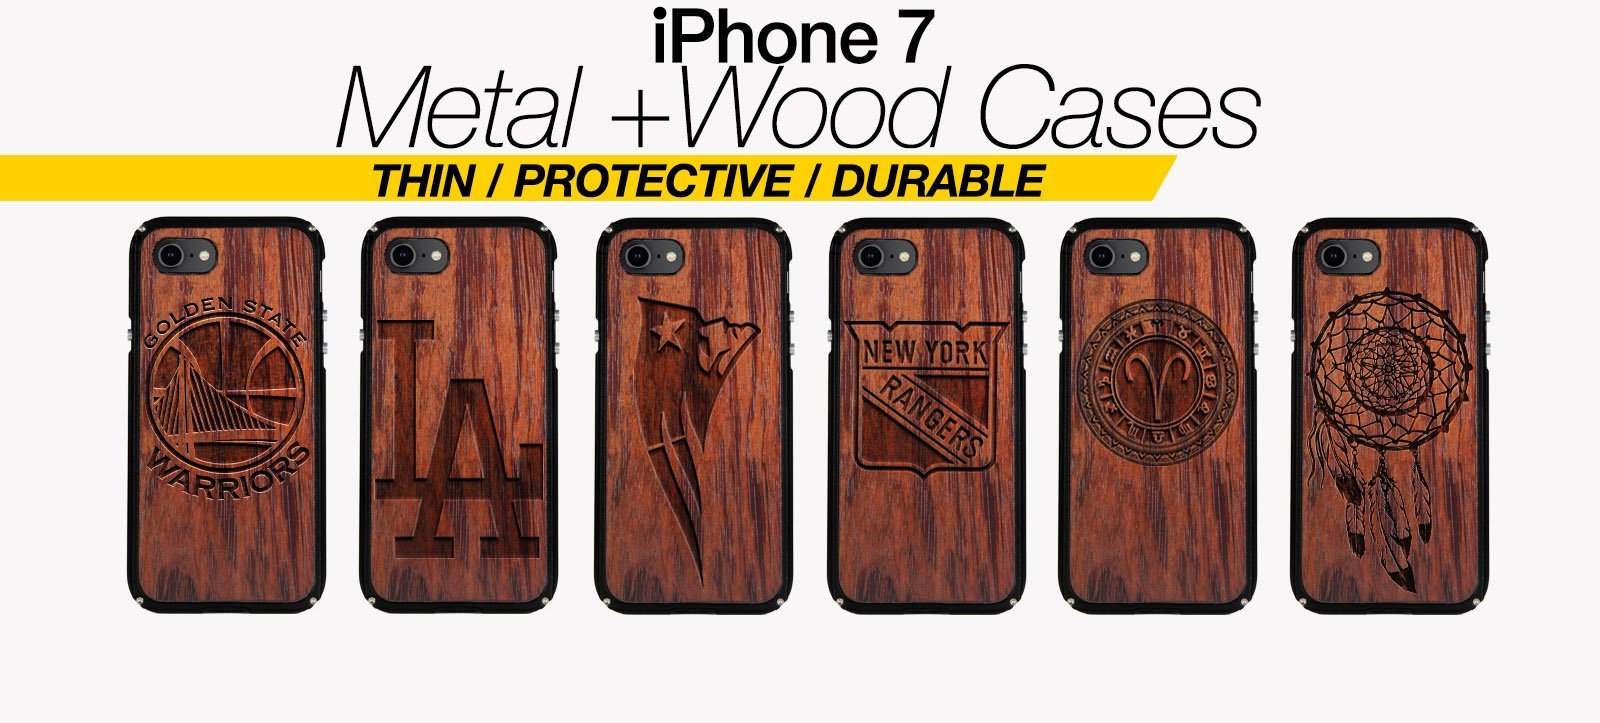 Wood And Metal iPhone 7 Cases Best Wood And Metal iPhone 7 Covers Thin Protective Eco Friendly